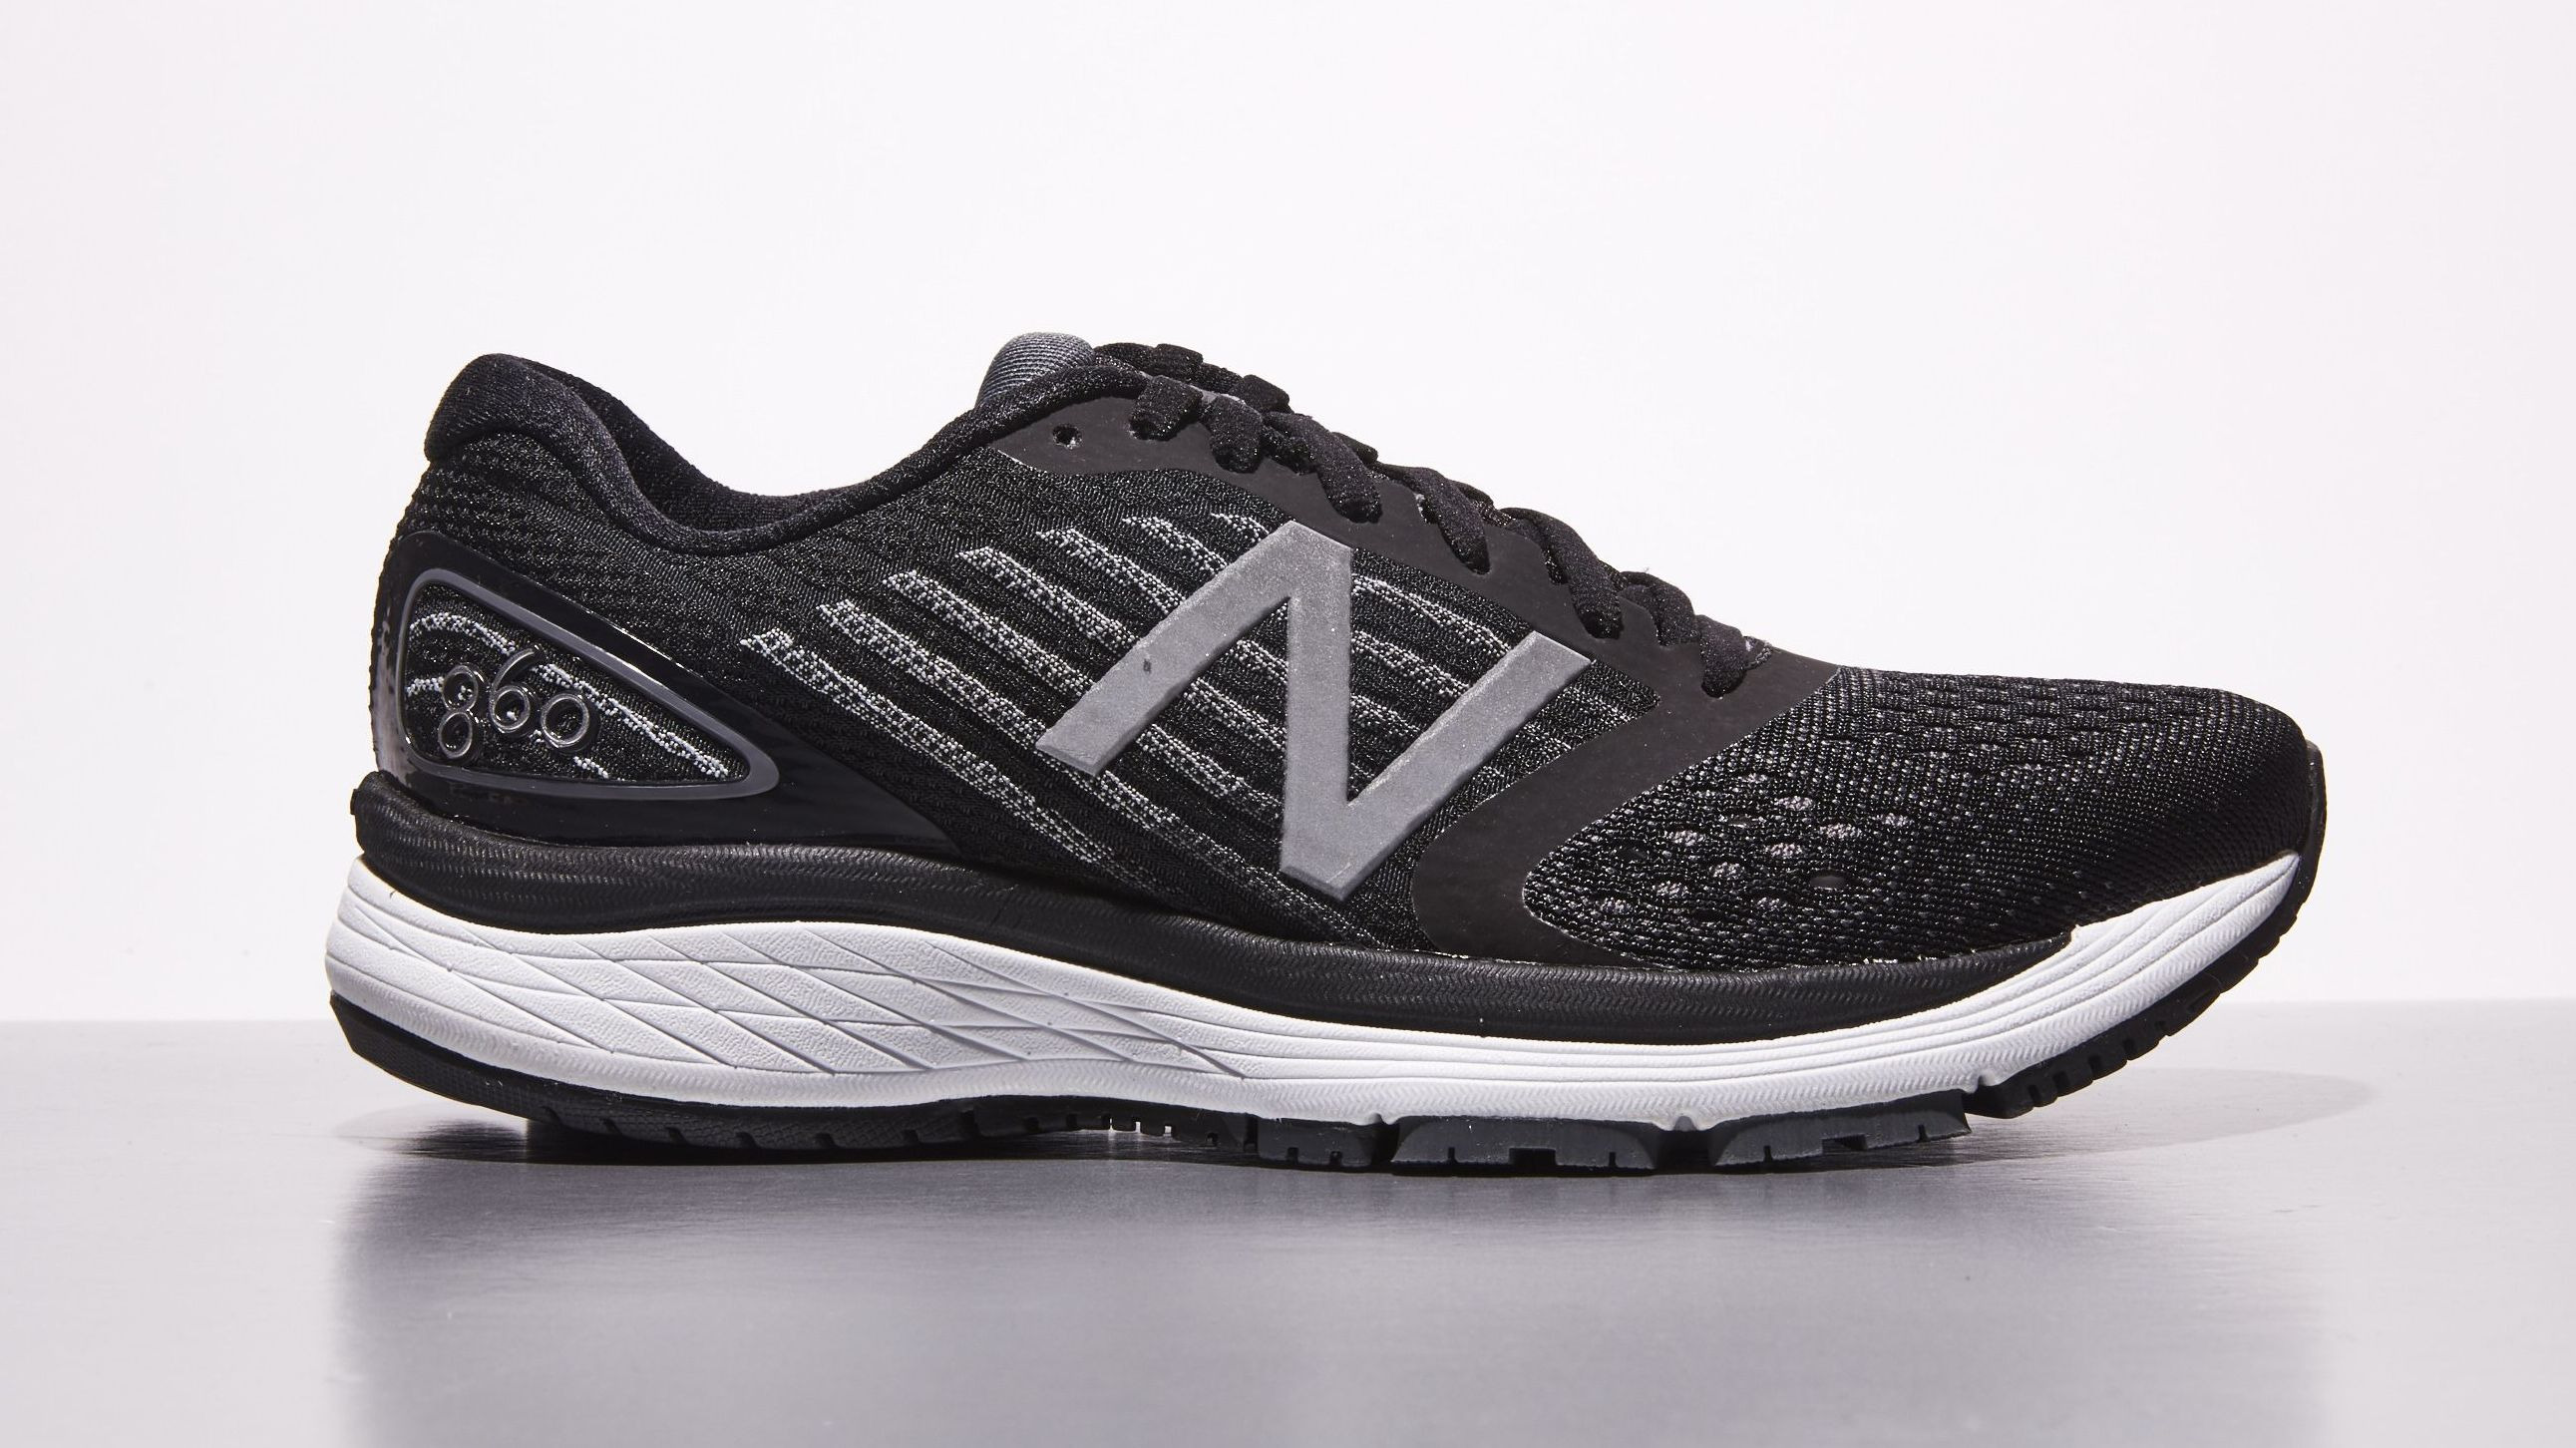 f505cdce0e75b New Balance 860v9 Review - Moderate Stability Shoe Review